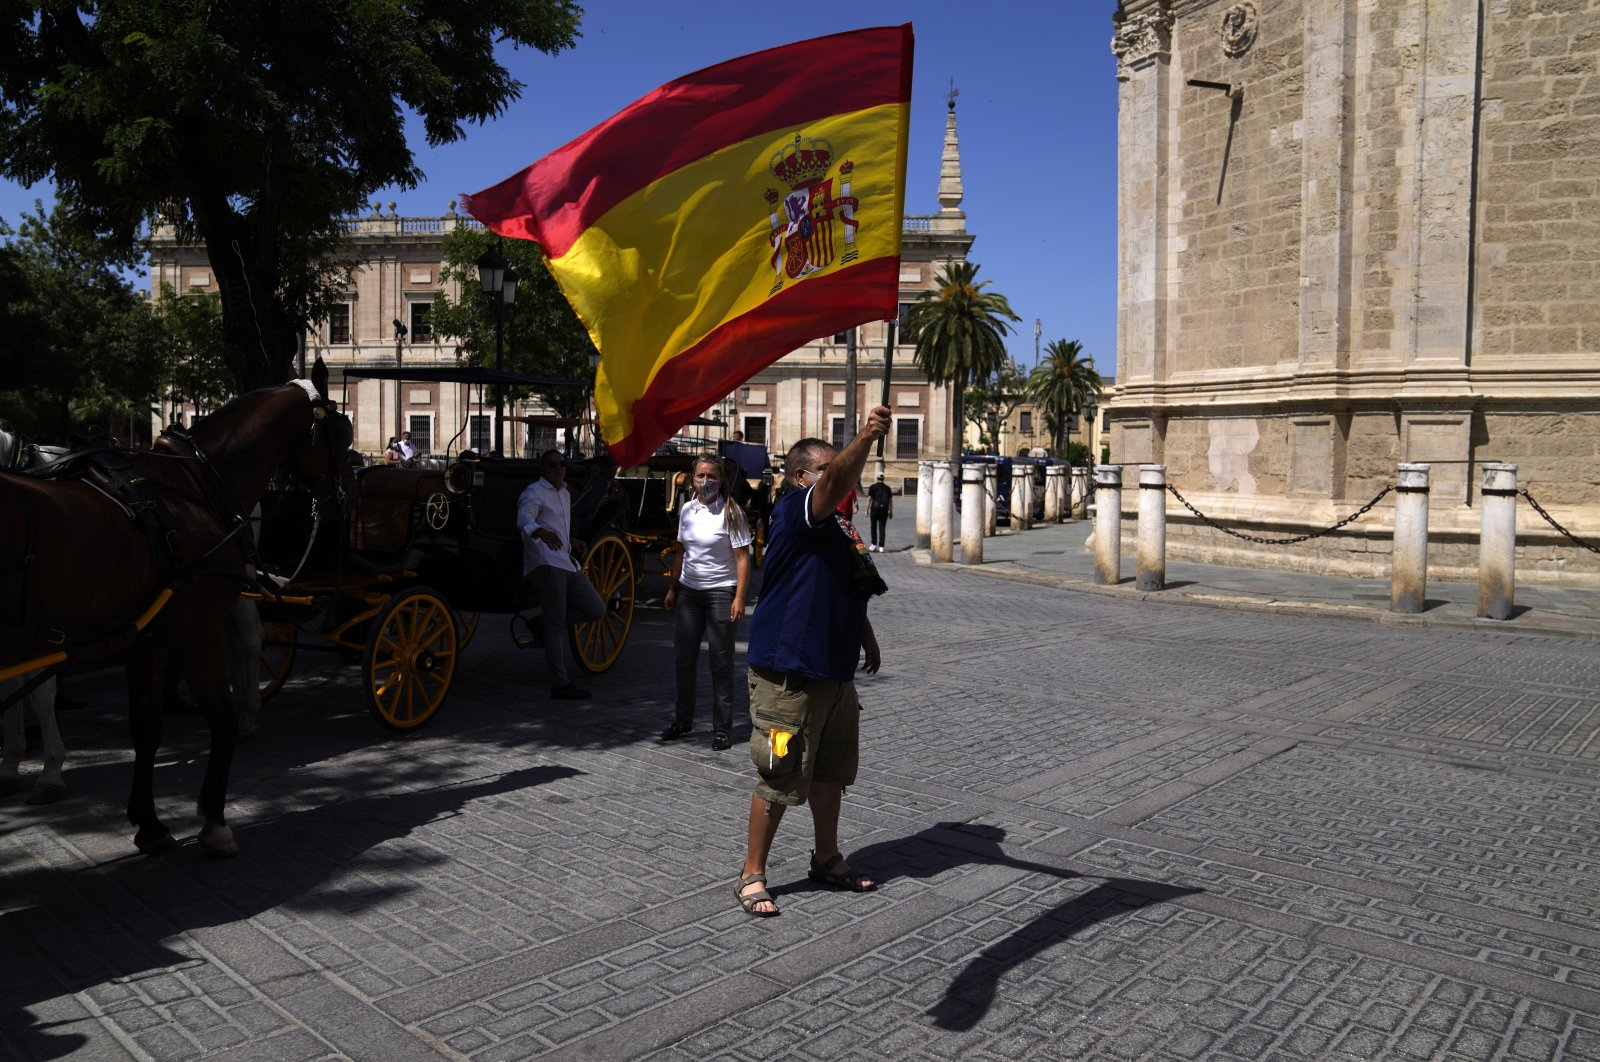 A Spanish fan waves his country's flag at Plaza del Triunfo in Seville, Spain, June 13, 2021. (AP Photo)